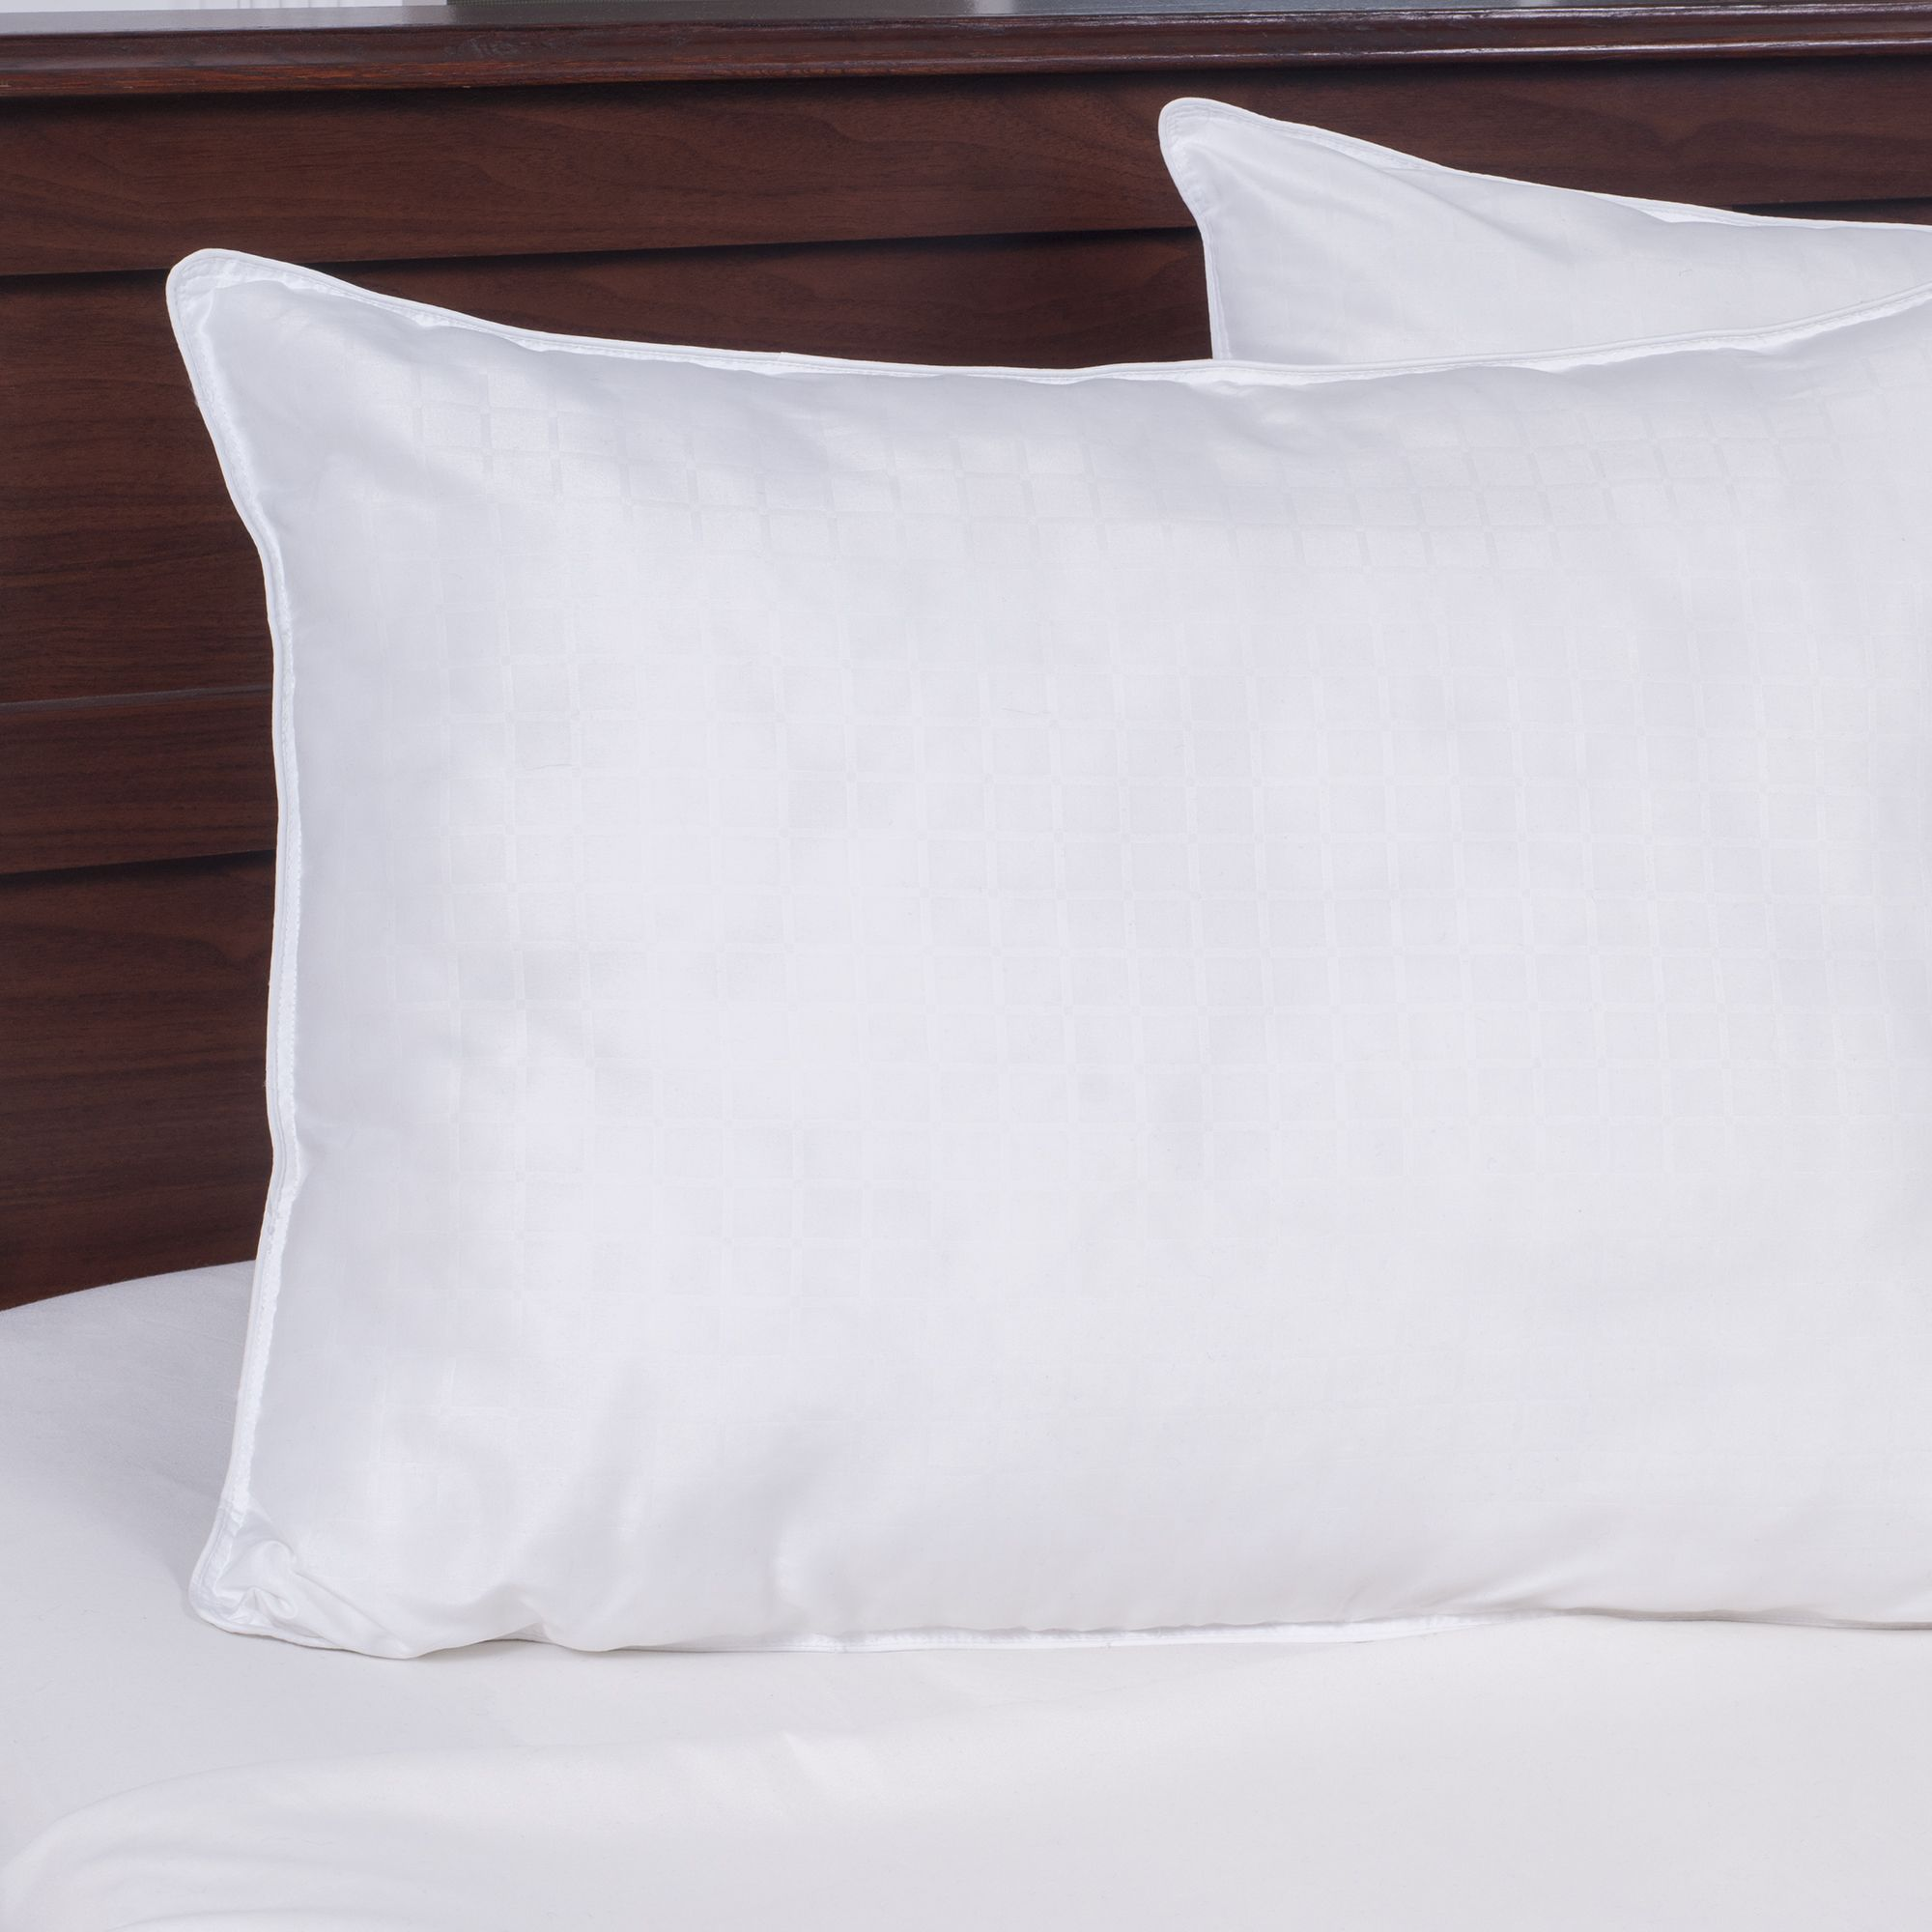 Wholesale Club Bed Pillows on DailyMail